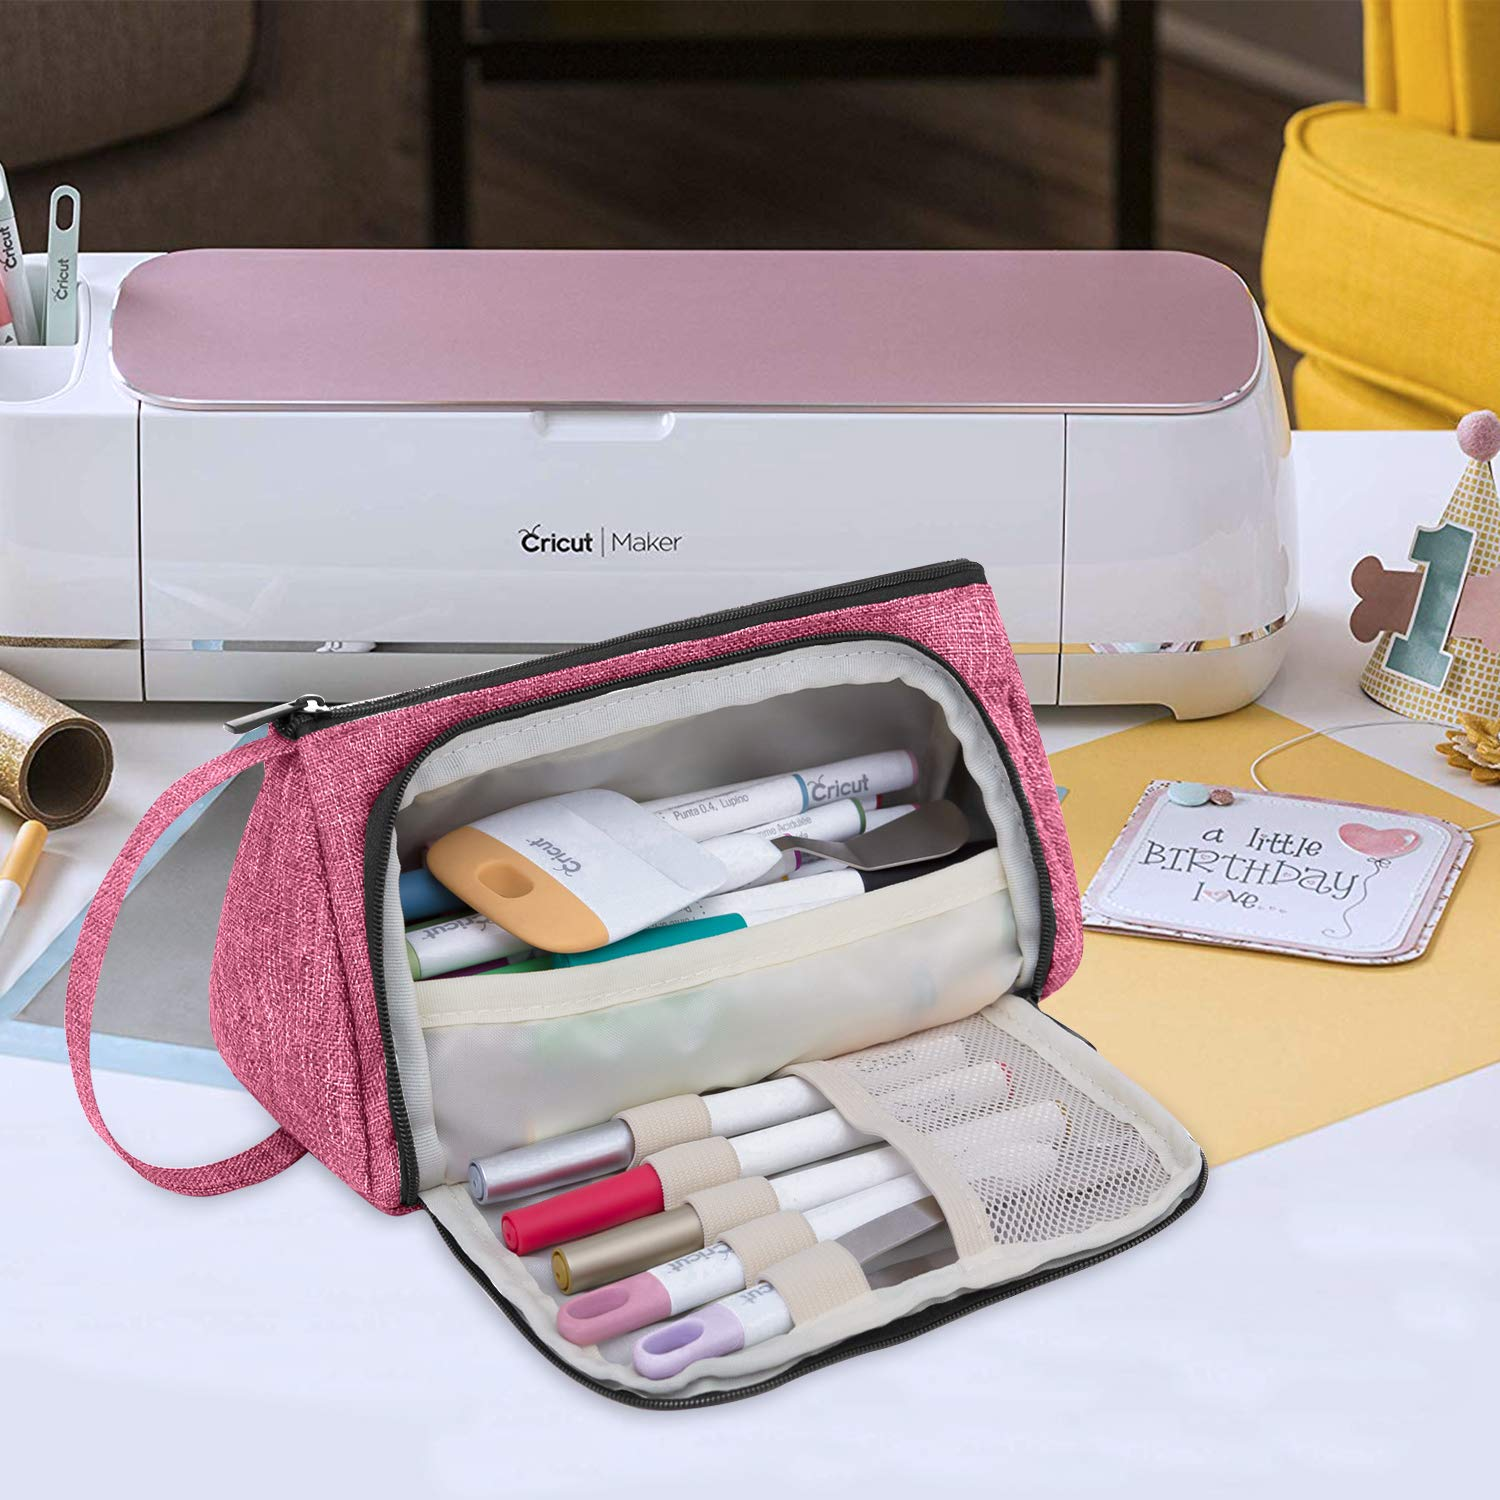 Carrying Case for Cricut Accessories Luxja Bag for Cricut Pen Set and Basic Tools Red Bag Only